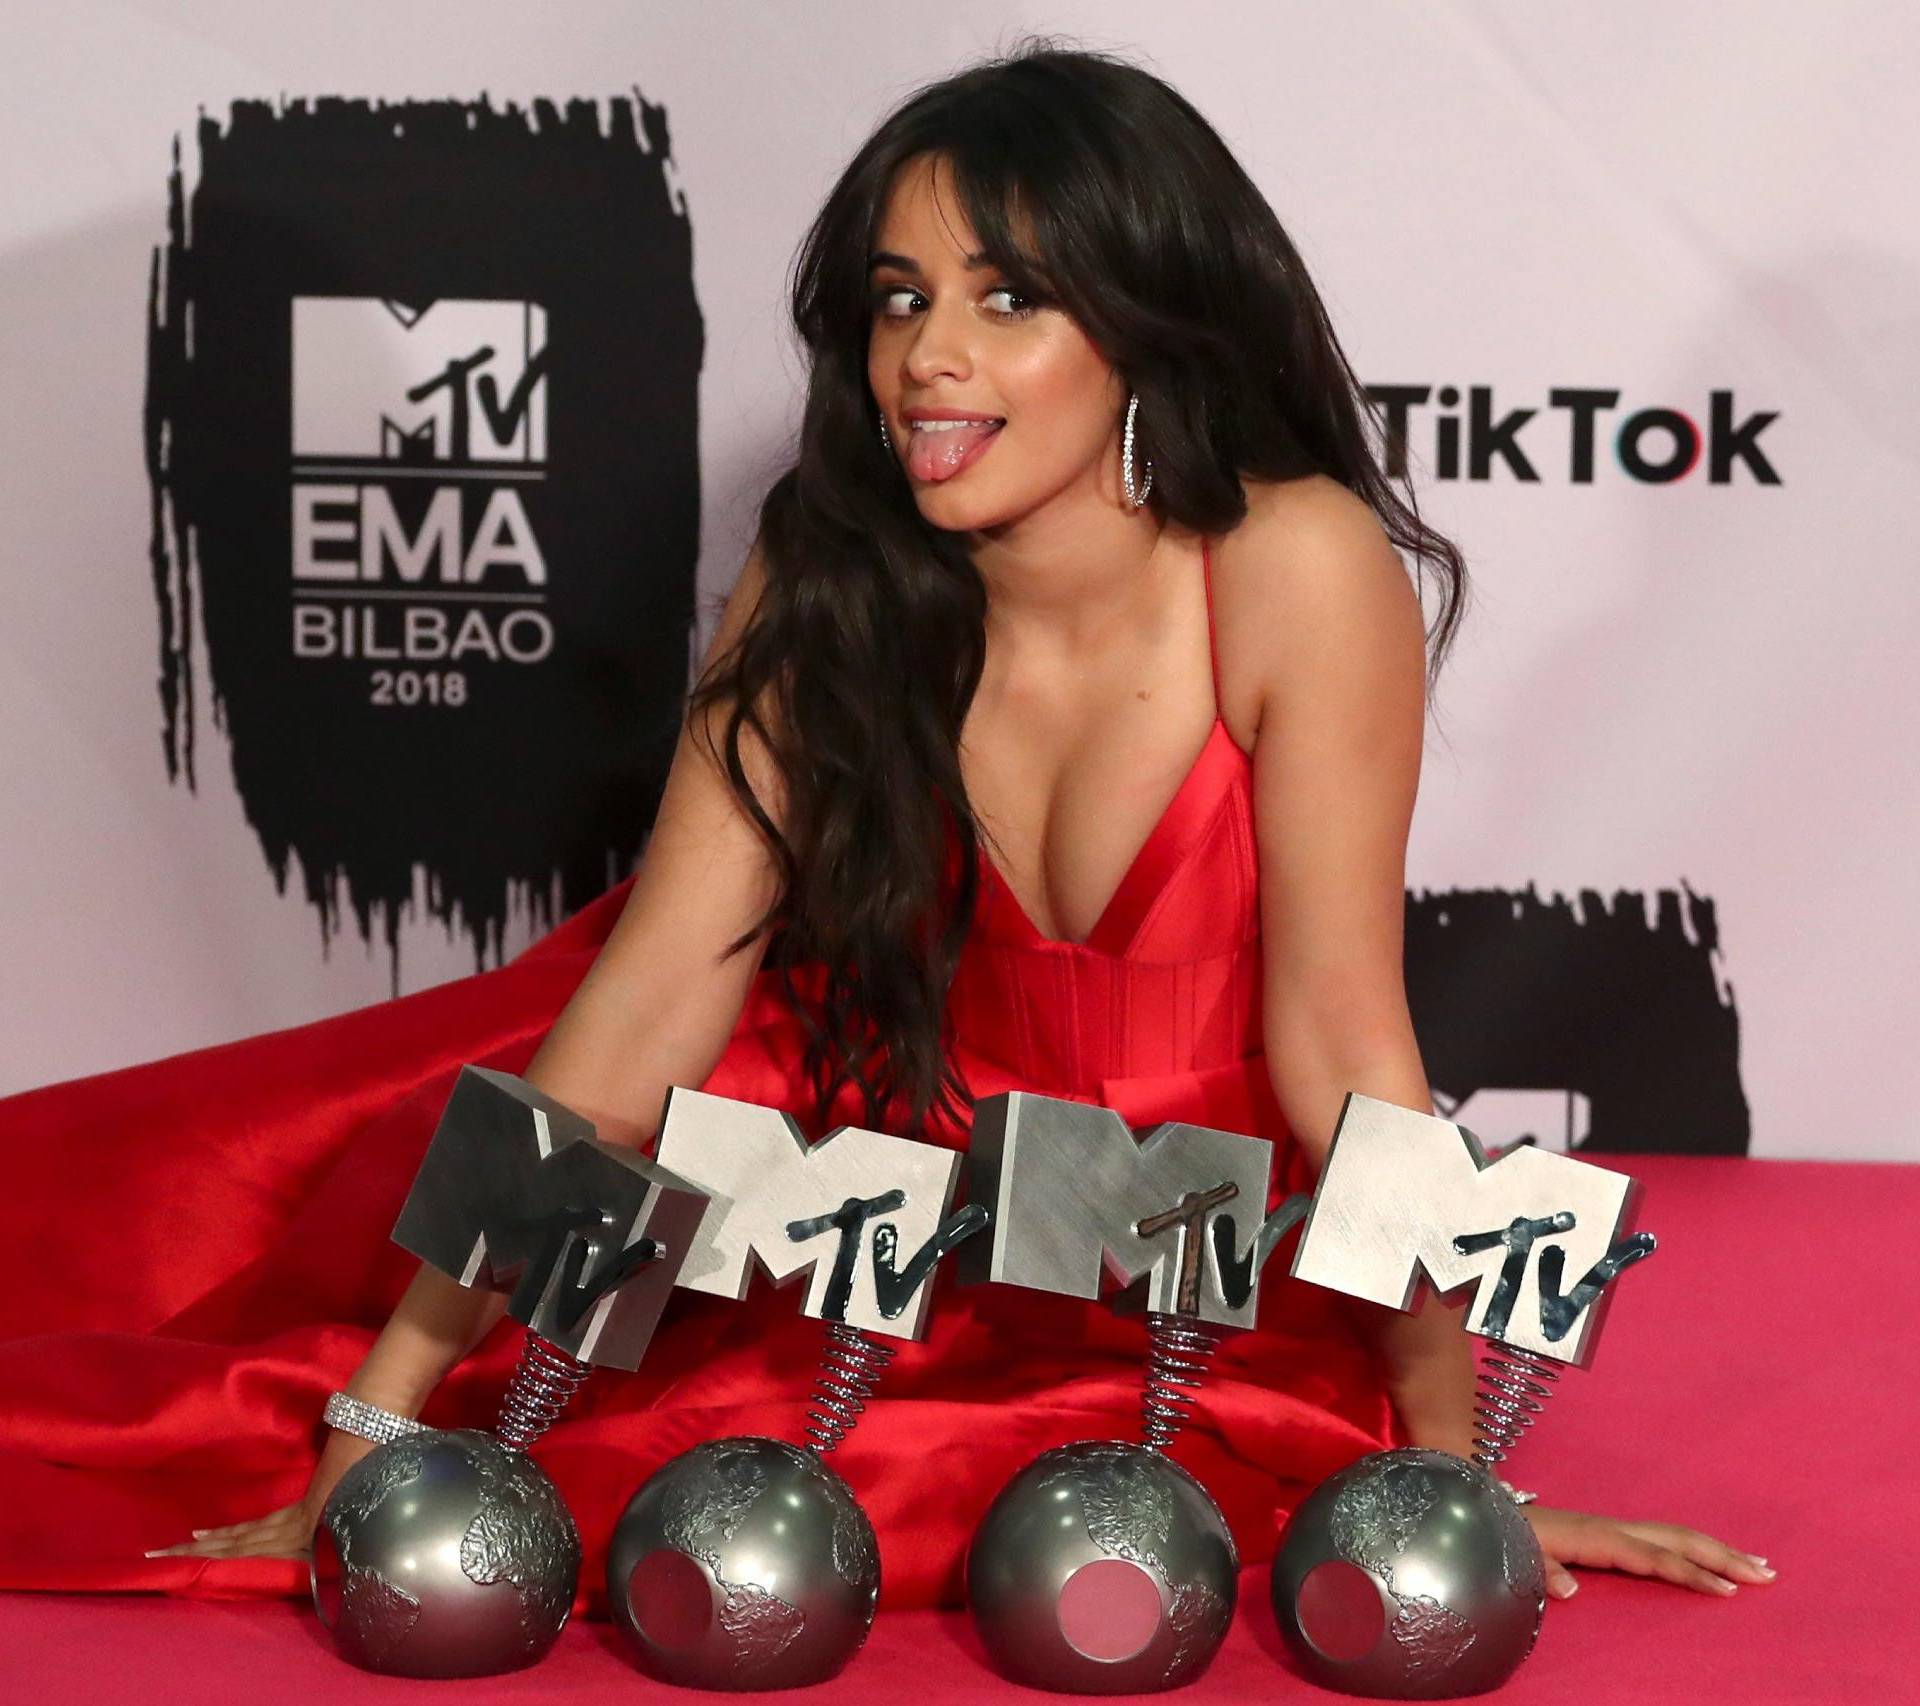 Camila Cabello poses with her awards during the 2018 MTV Europe Music Awards at Bilbao Exhibition Centre in Bilbao